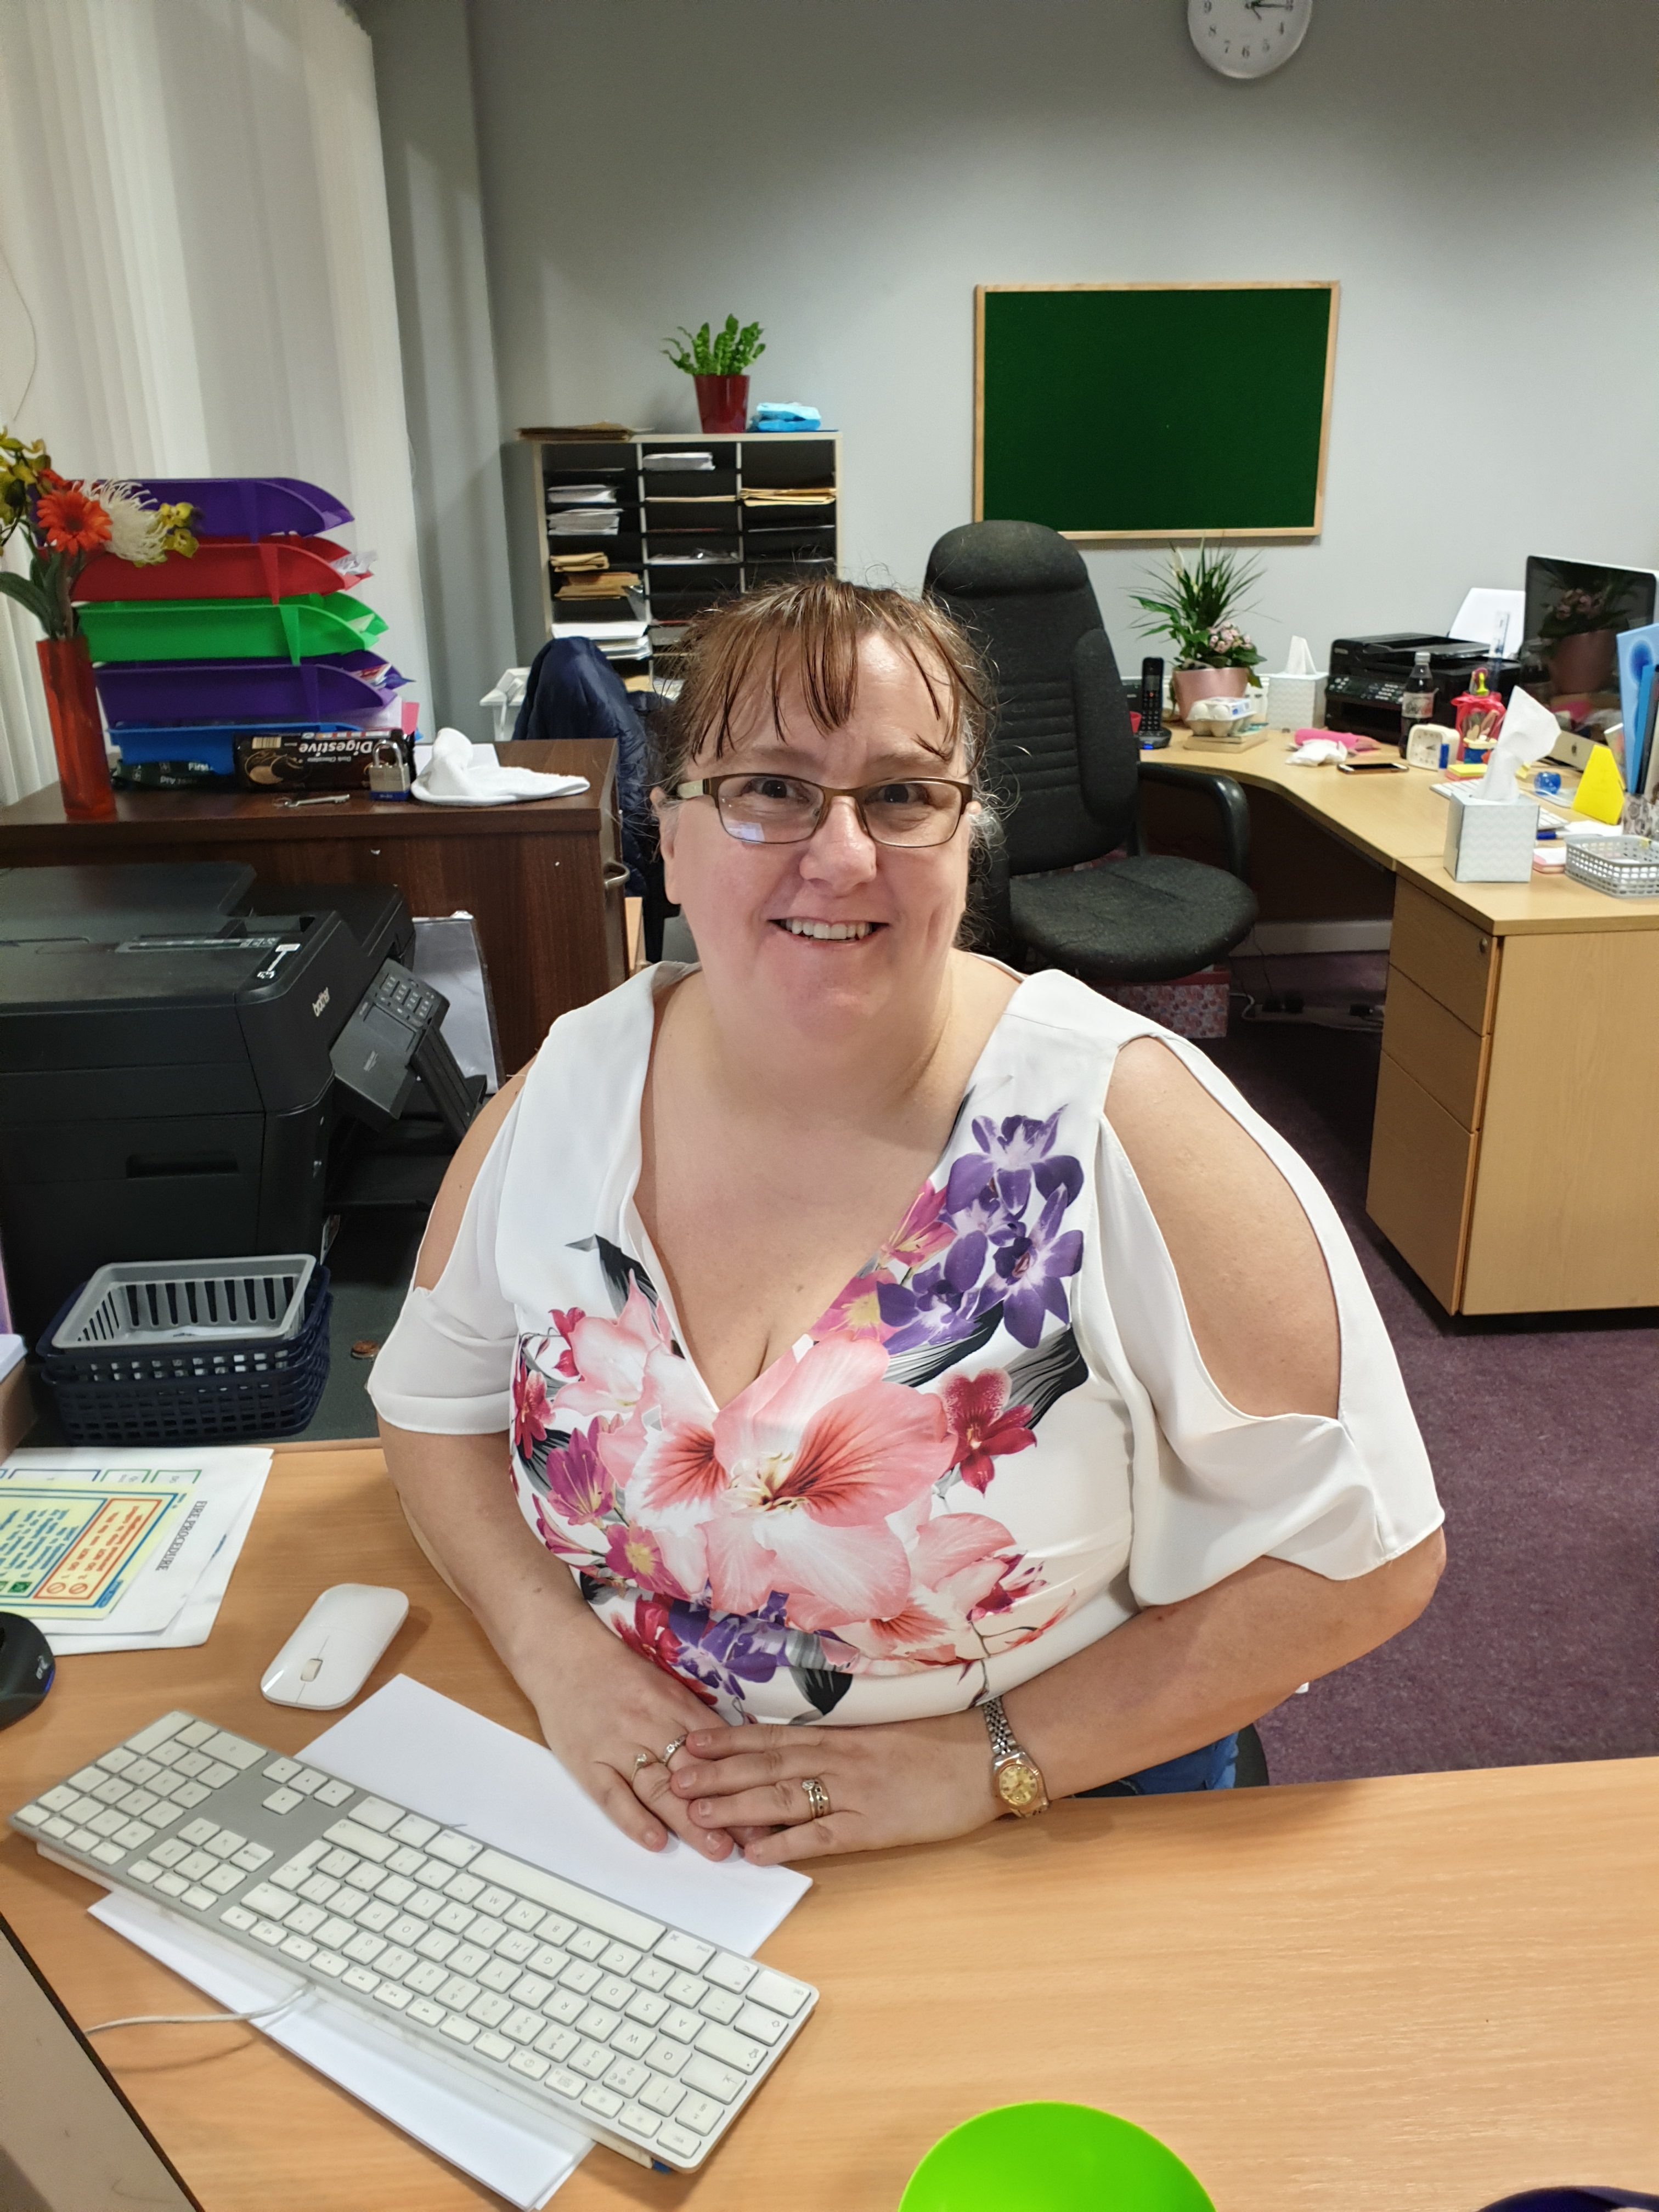 , Mental health drop in sessions rolled out seven-days a week, Skem News - The Top Source for Skelmersdale News, Skem News - The Top Source for Skelmersdale News